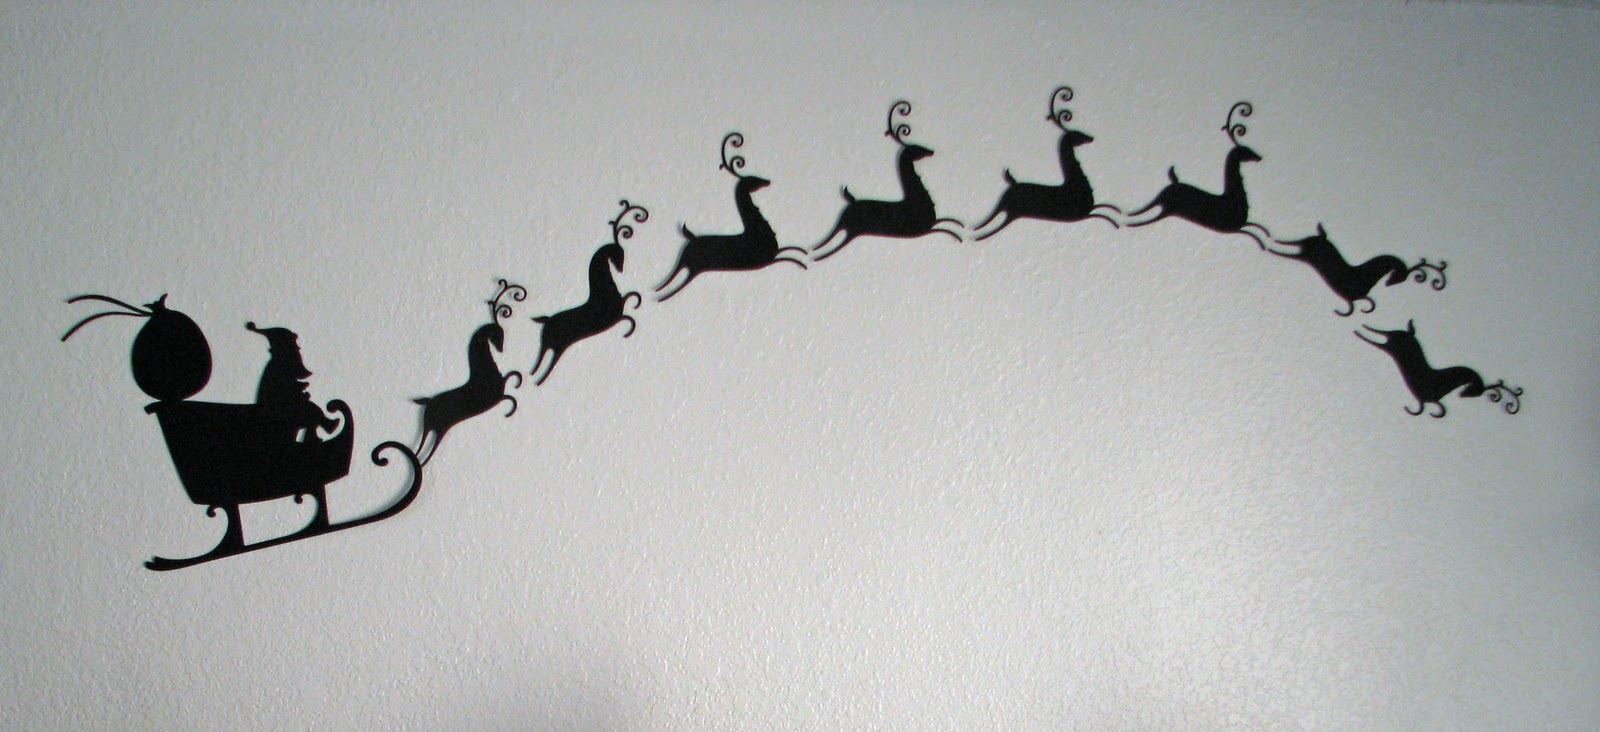 Santa And Reindeer Silhouette Images & Pictures - Becuo